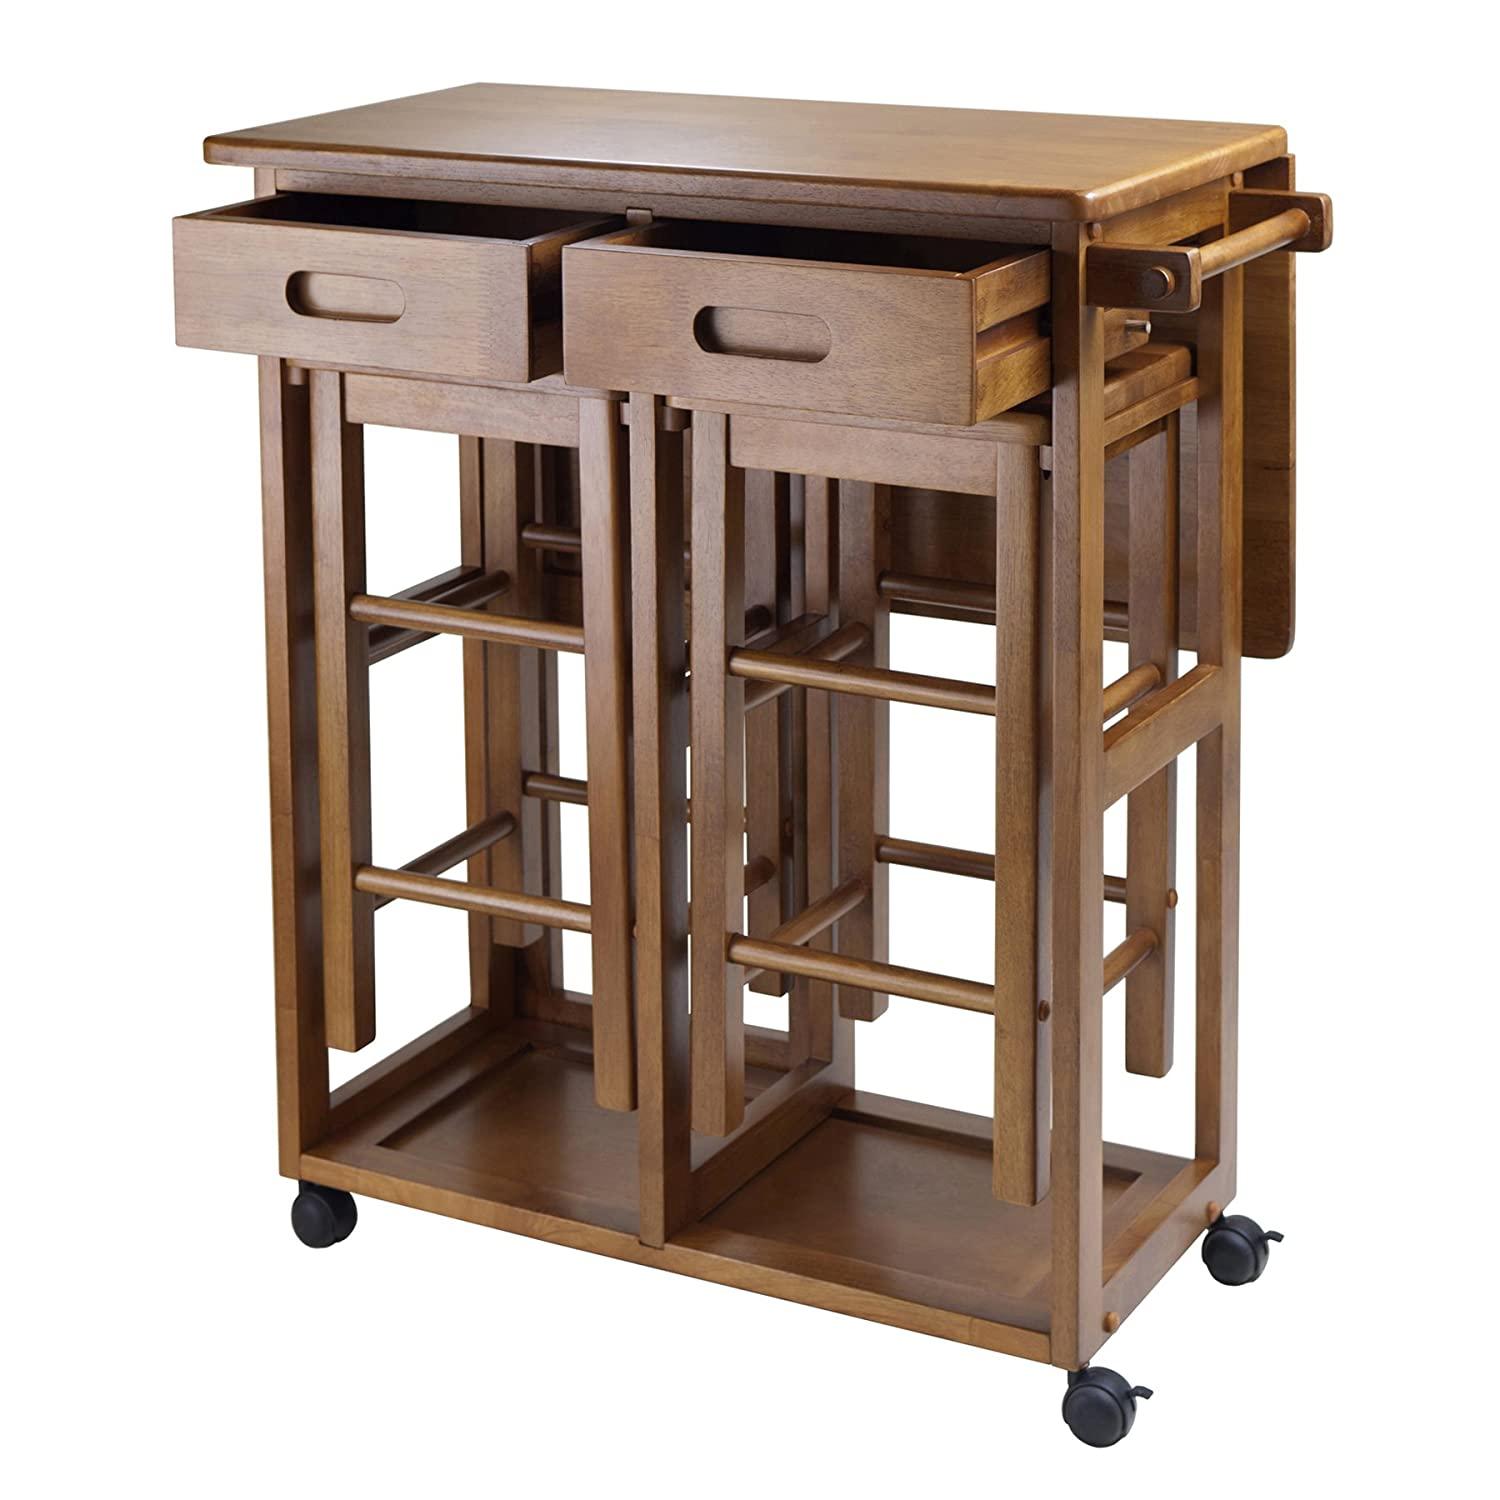 sc 1 st  Amazon.com & Amazon.com: Winsome Space Saver with 2 Stools Square: Kitchen u0026 Dining